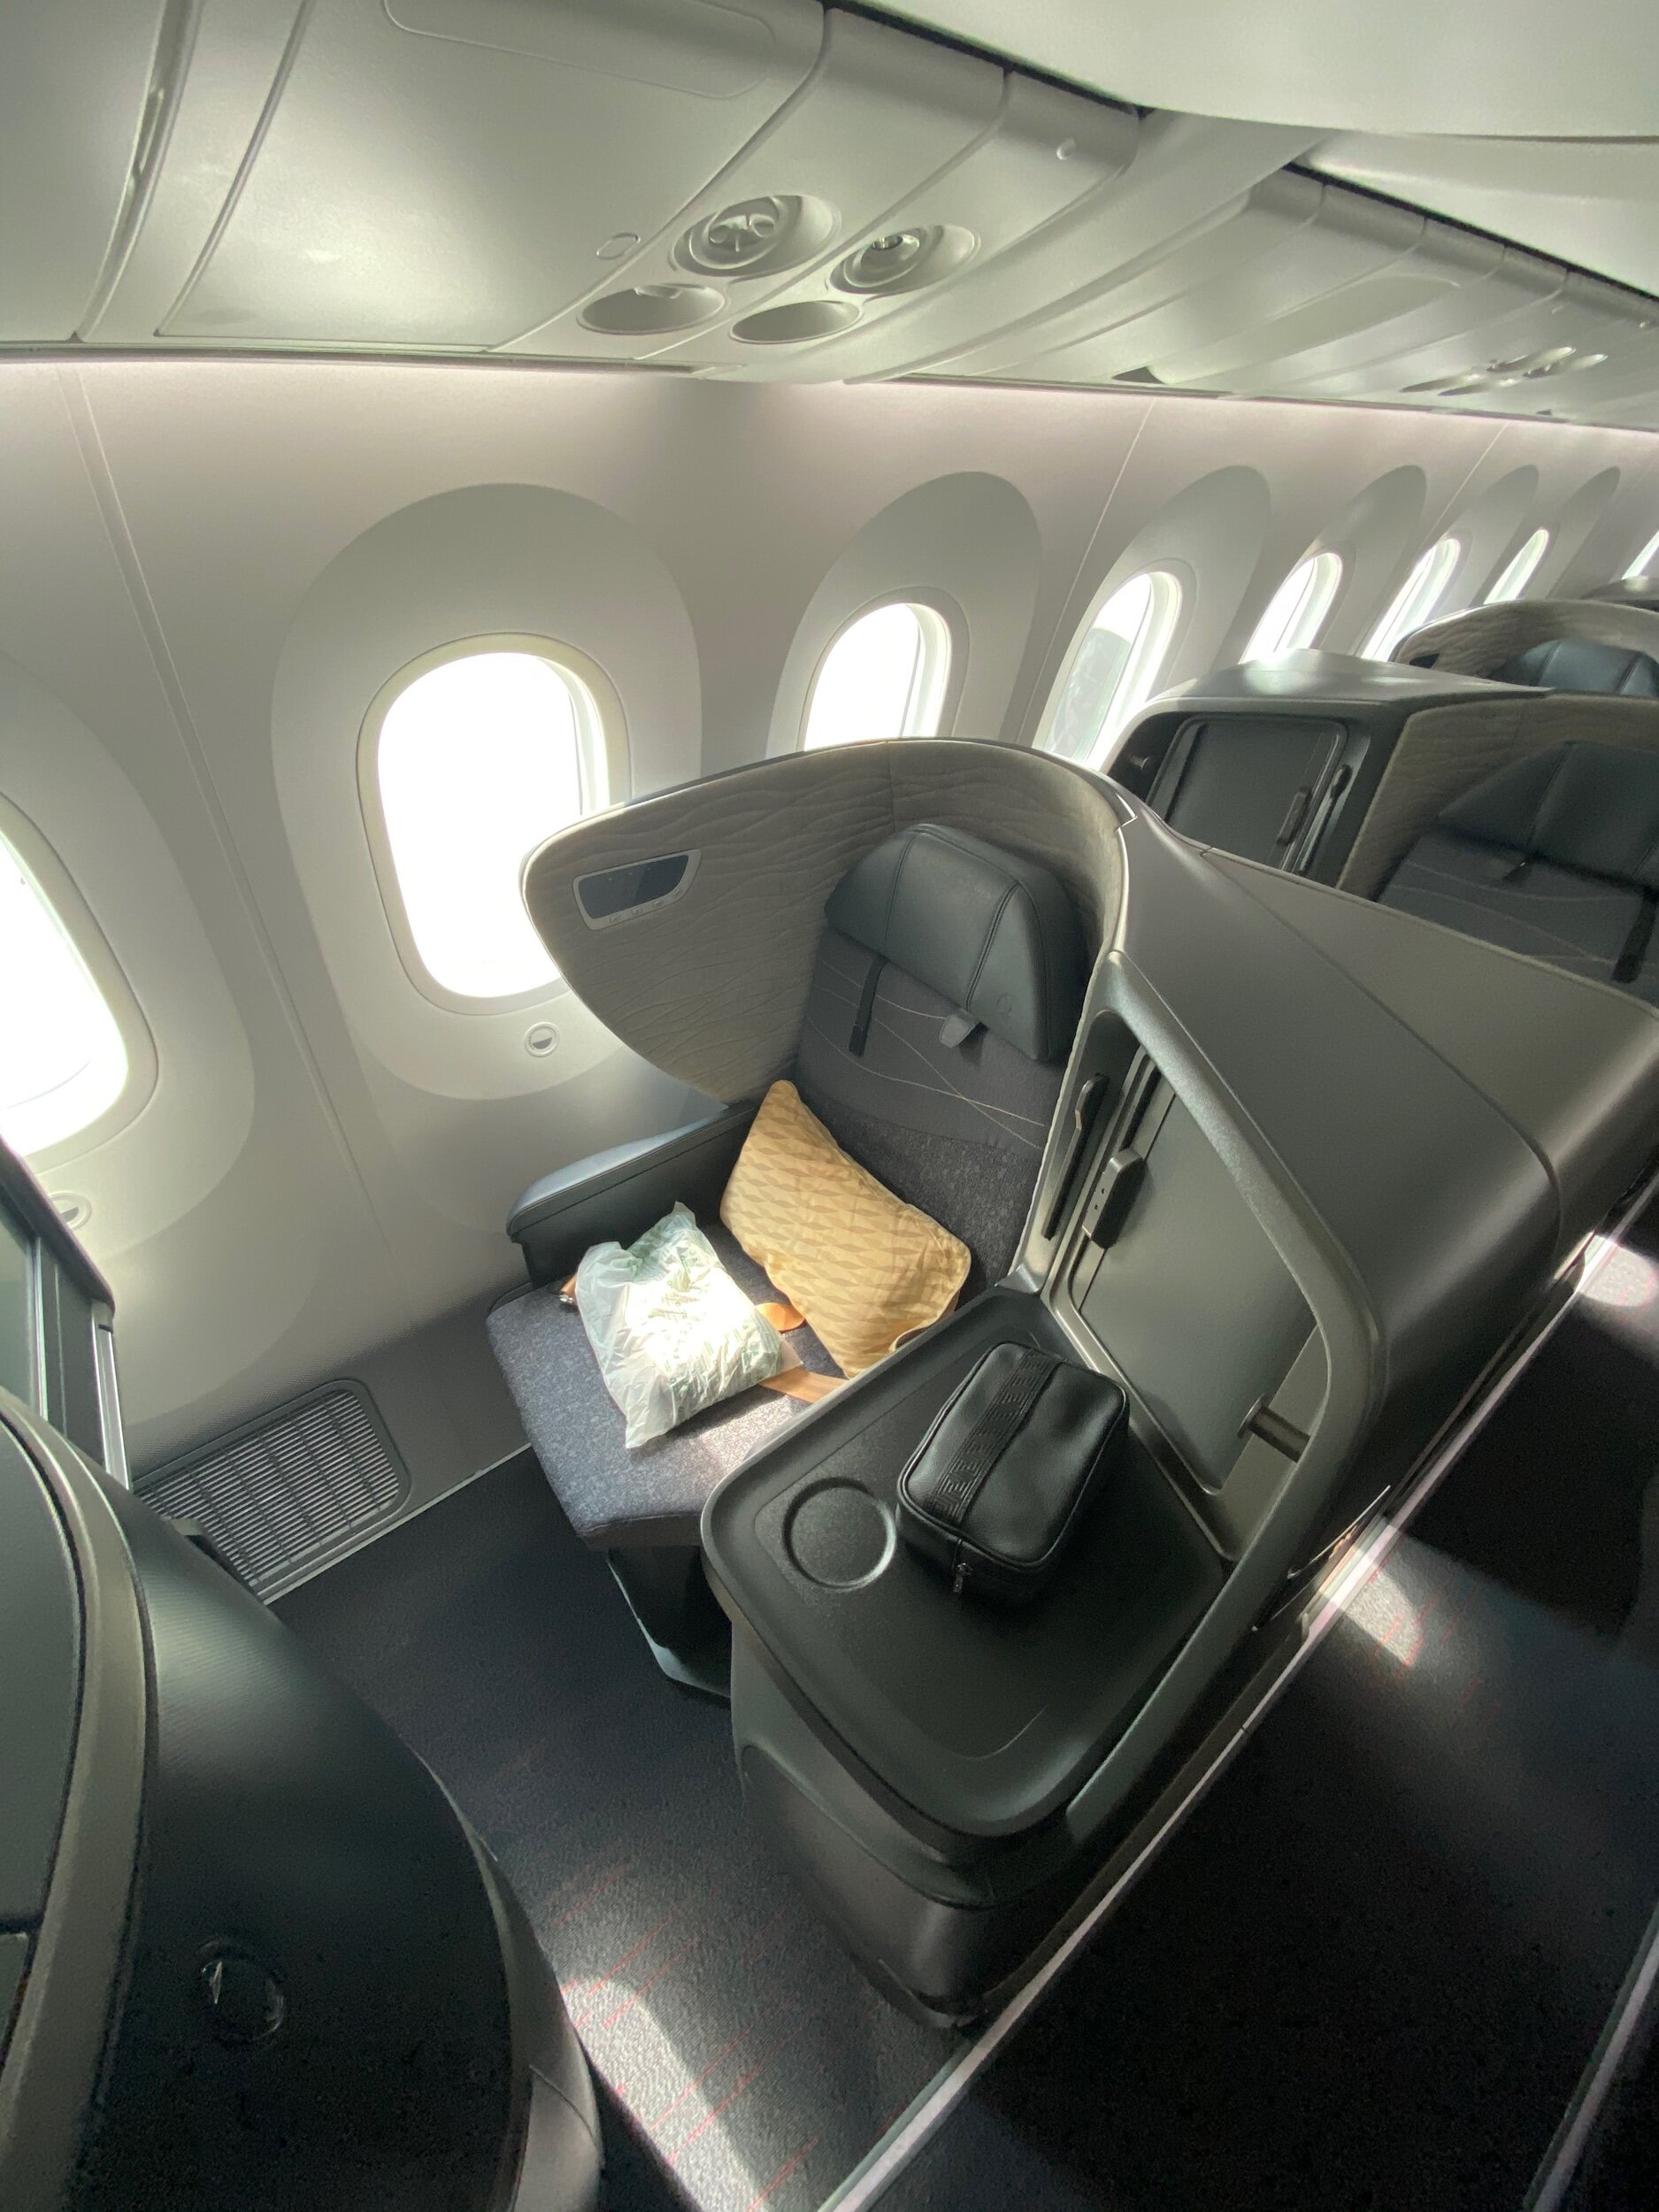 Turkish Airlines Brand New Boeing 787 Business Class Seat